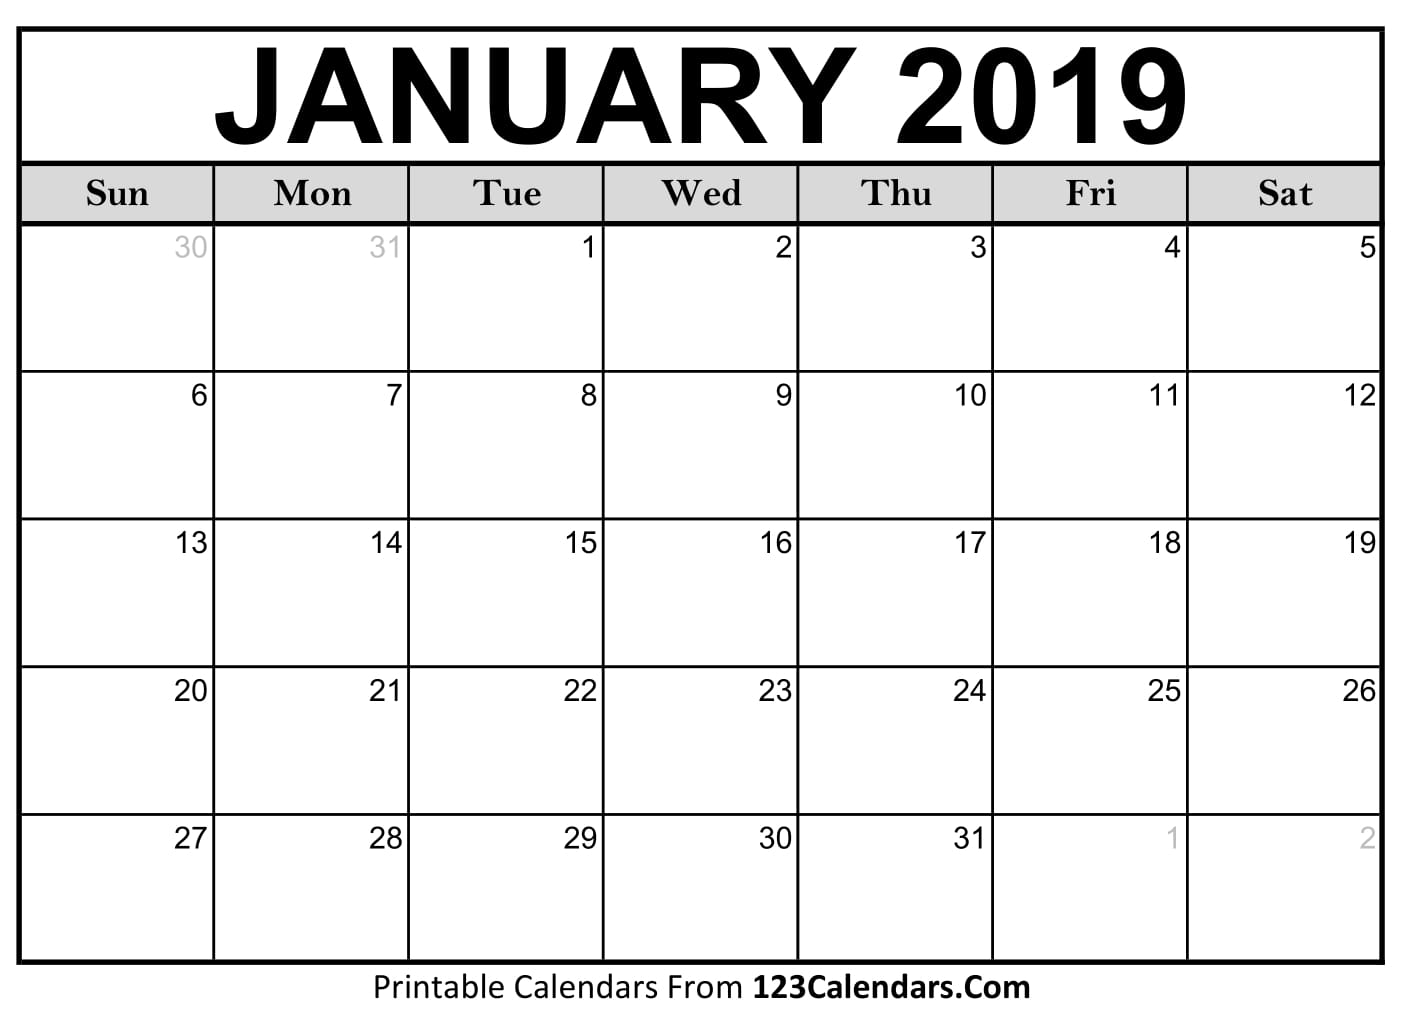 2019 January Calendar 2019 Printable Monthly Calendar Formats (Blank) | Zenodo